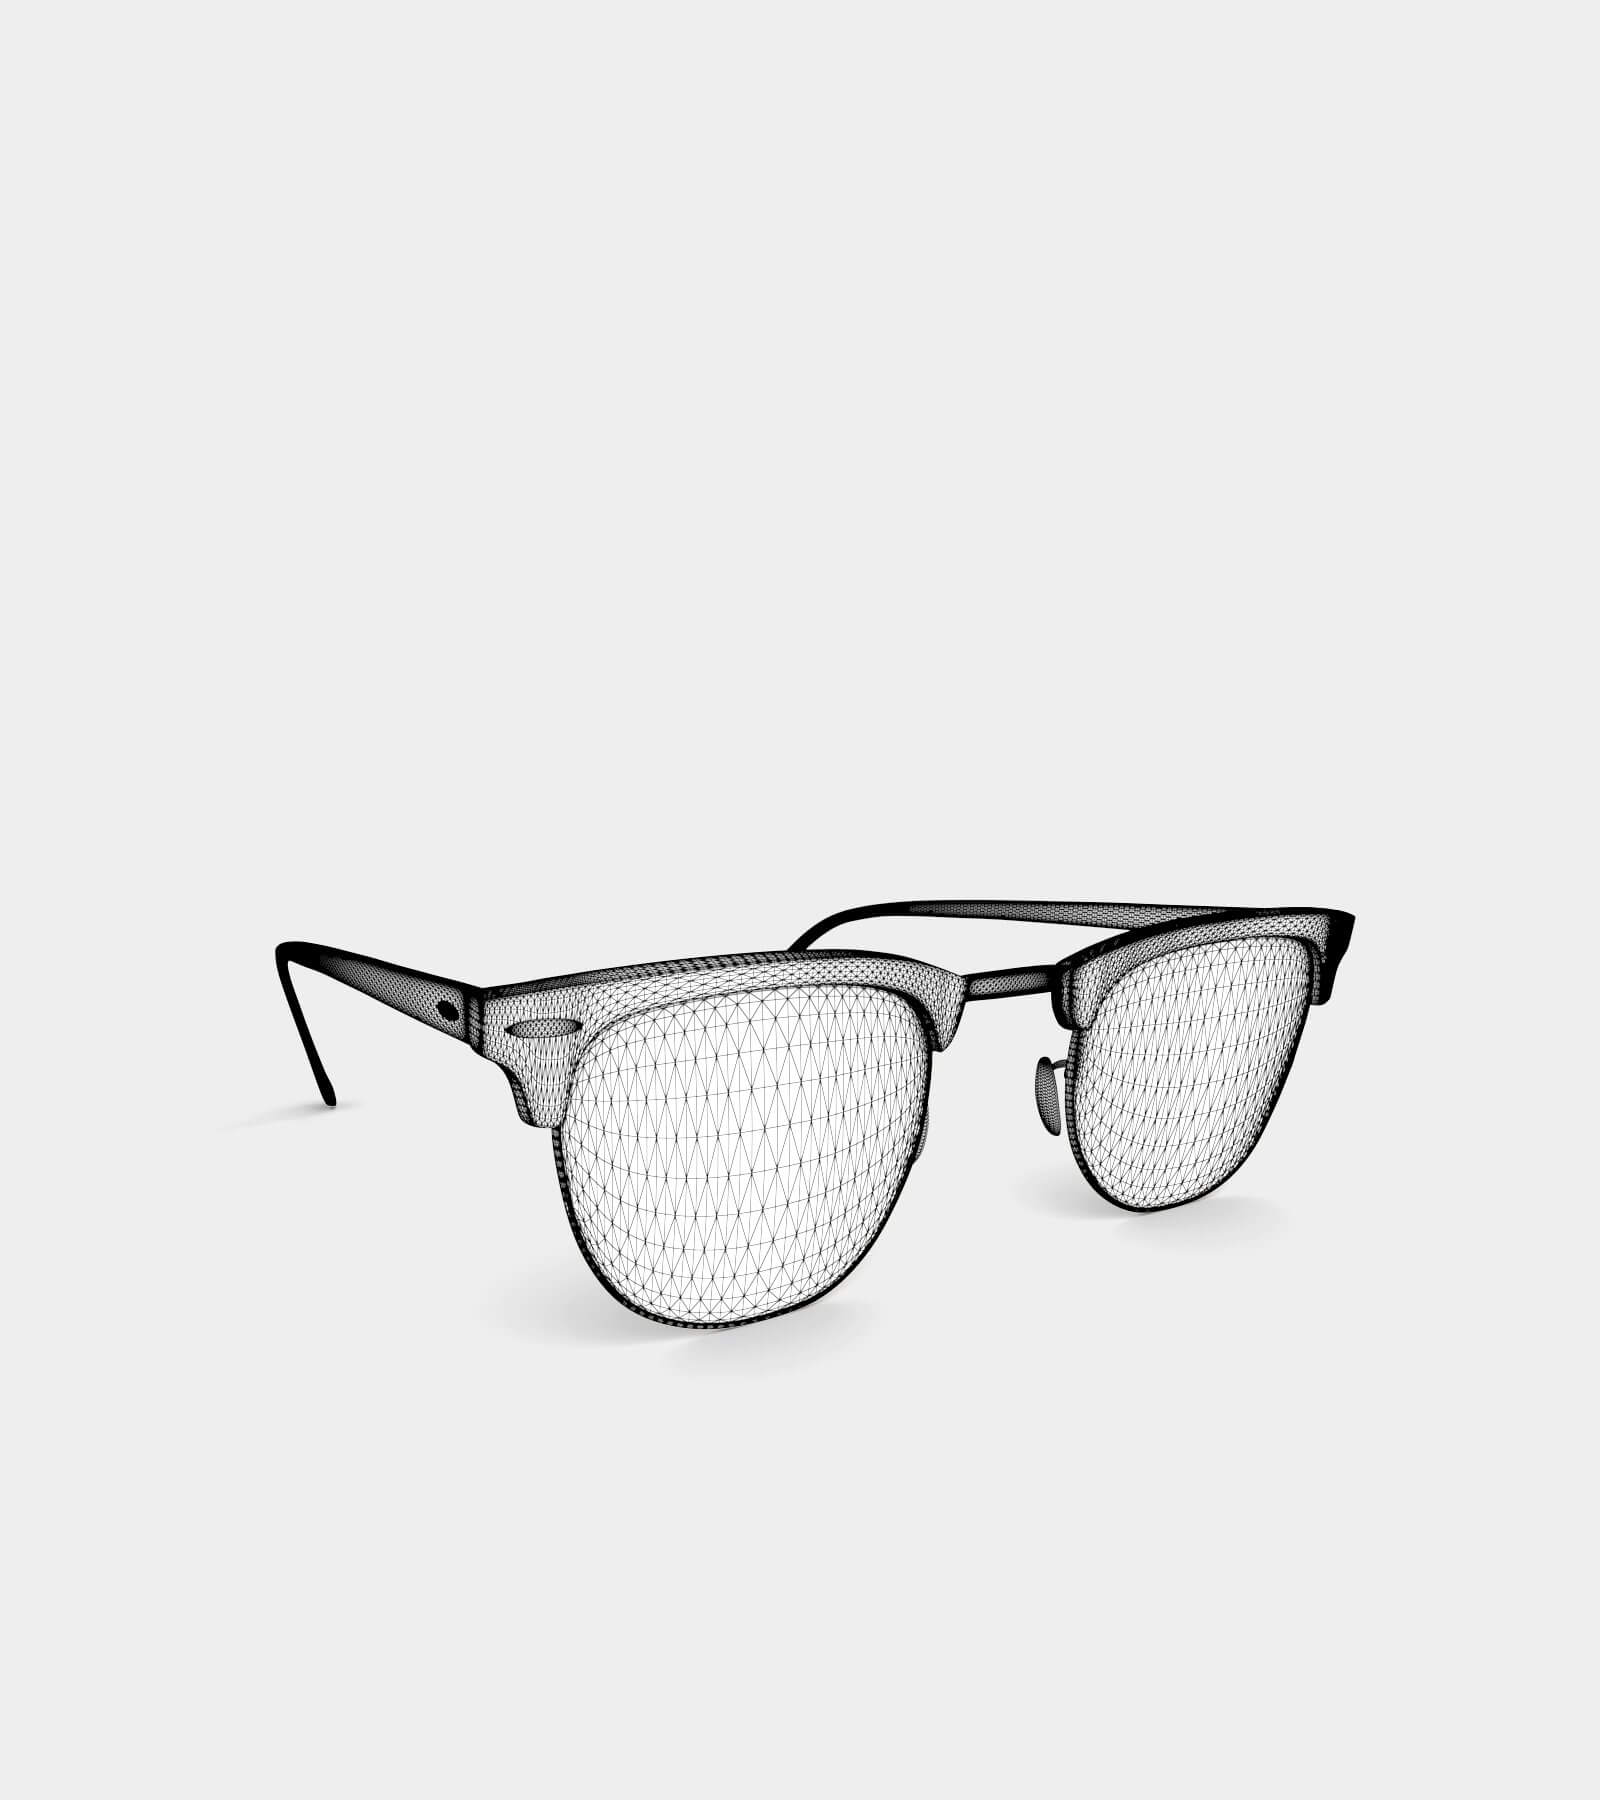 Sunglass-wire-2 3D Model